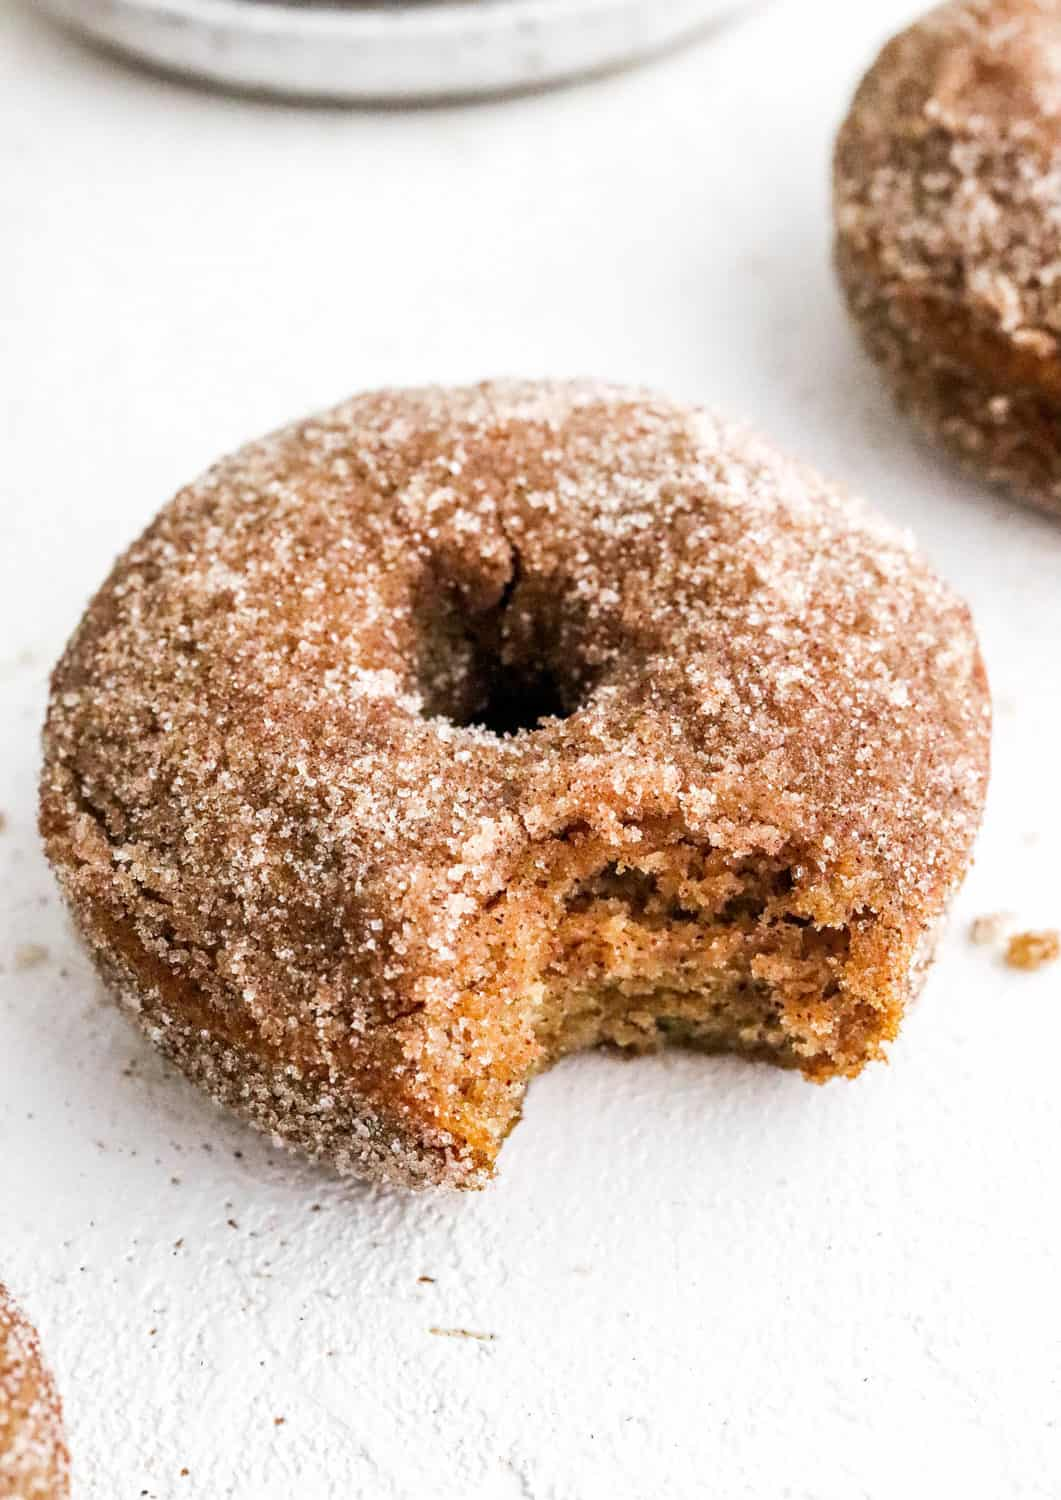 A single apple cider donut on a white surface with another donut next to it.